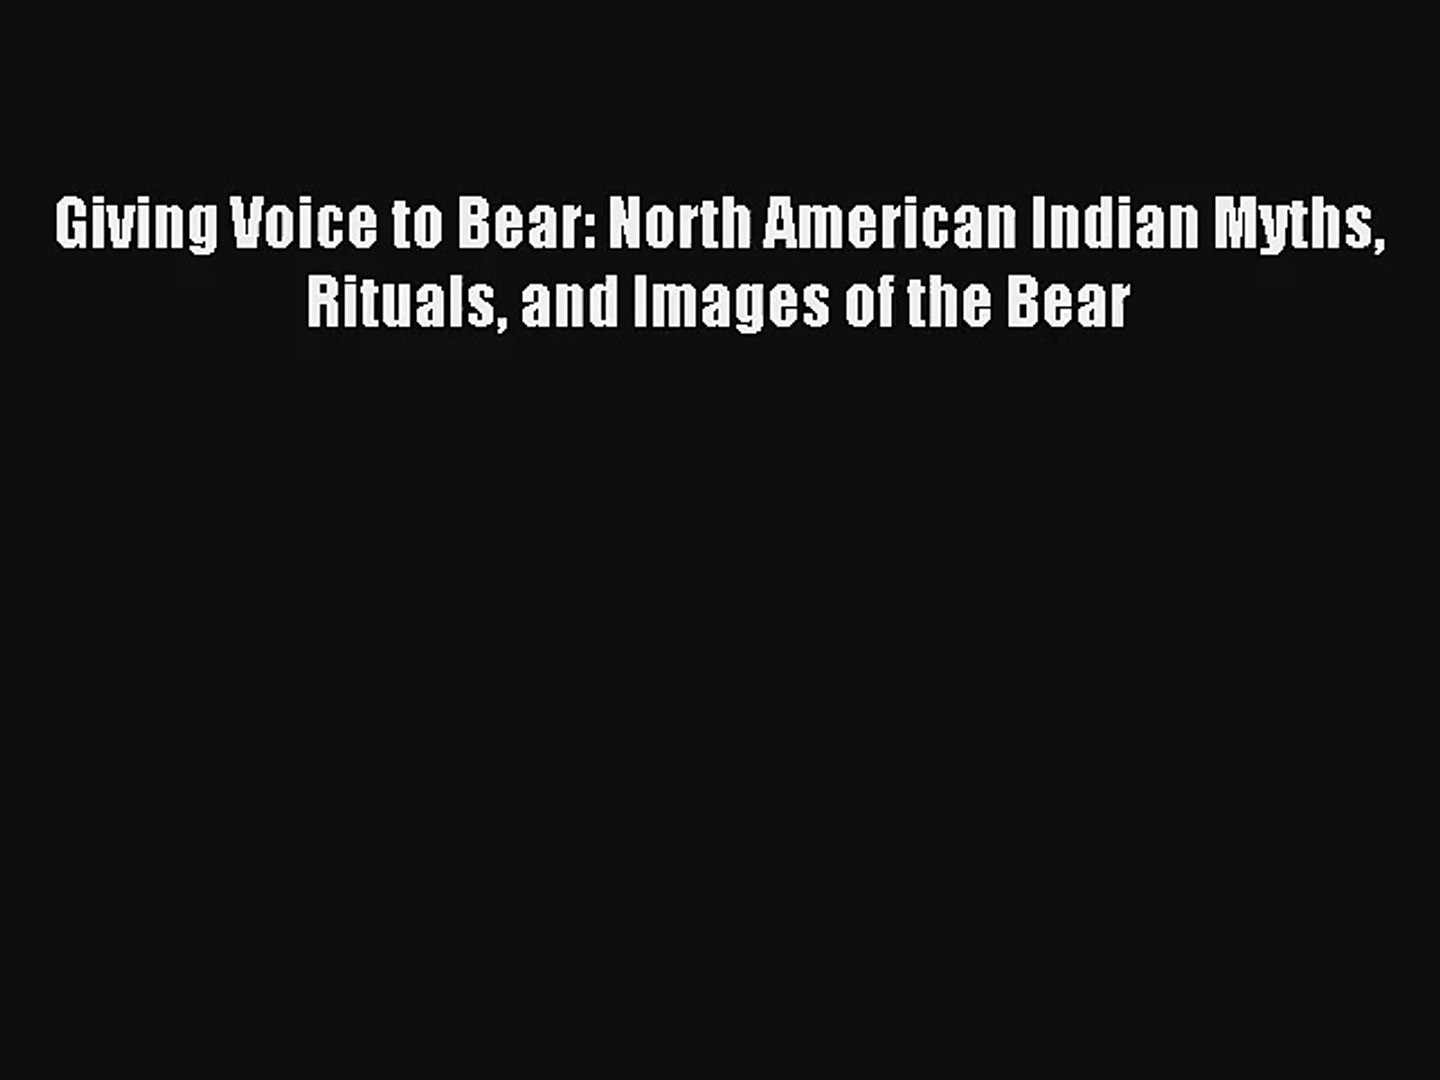 AudioBook Giving Voice to Bear: North American Indian Myths Rituals and Images of the Bear